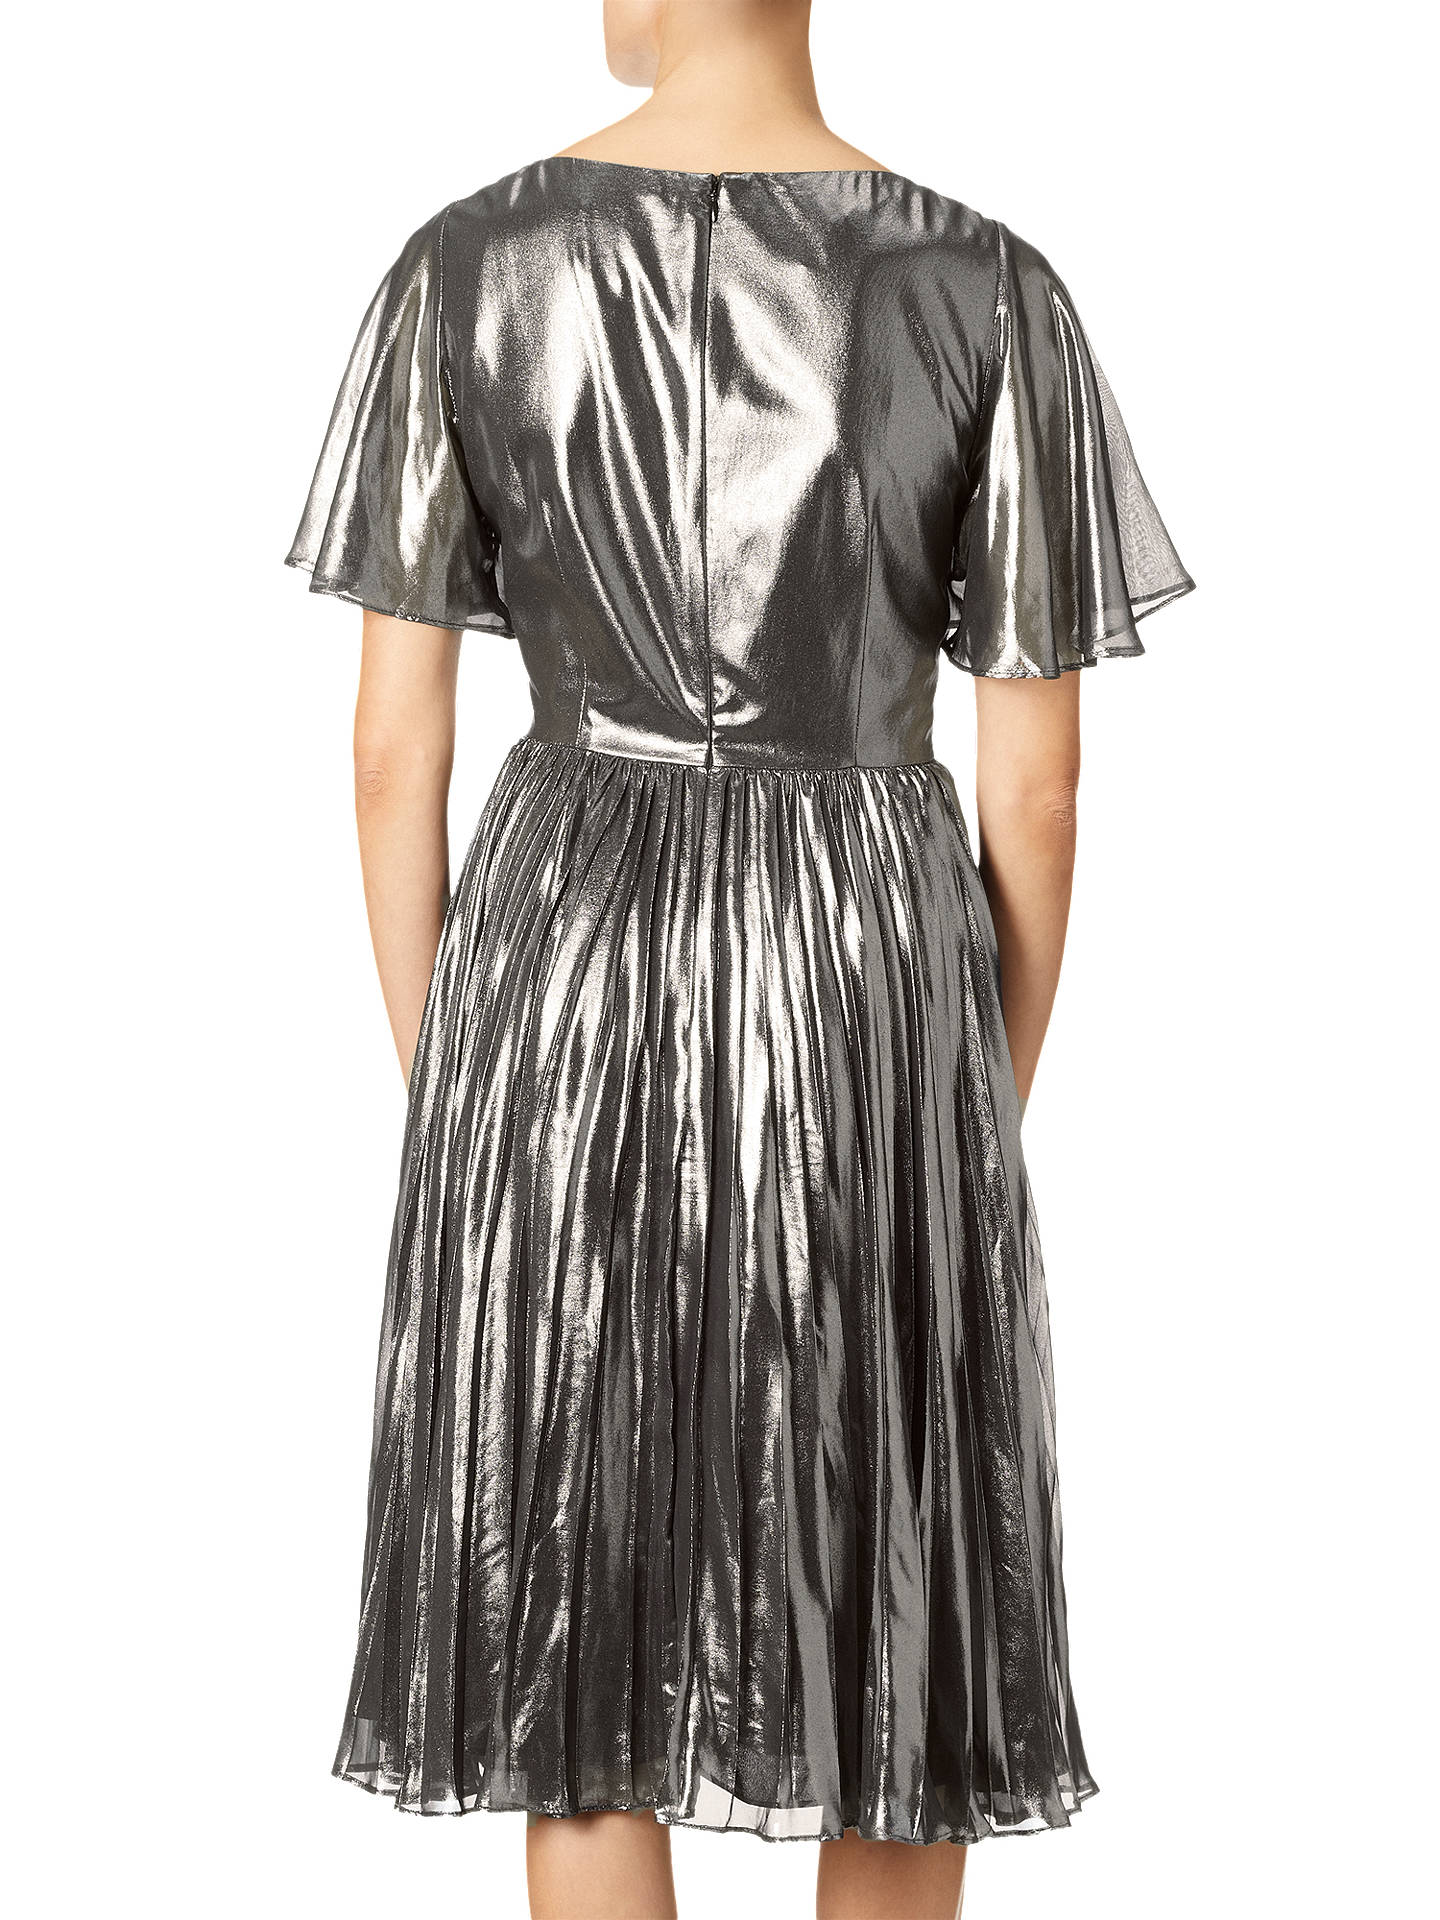 BuyAdrianna Papell Pleated Metallic Foil Dress, Gunmetal/Black, 8 Online at johnlewis.com